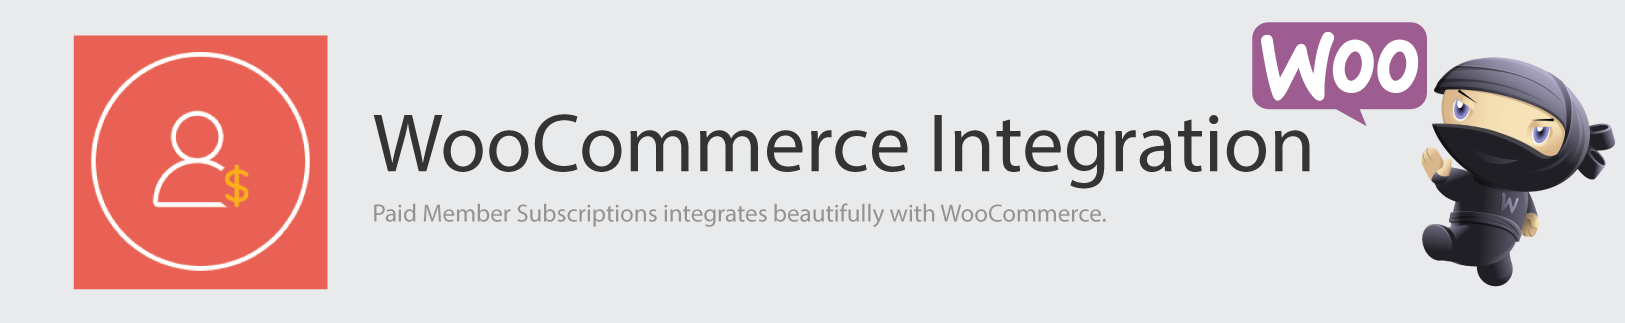 Paid Member Subscriptions - WooCommerce Integration